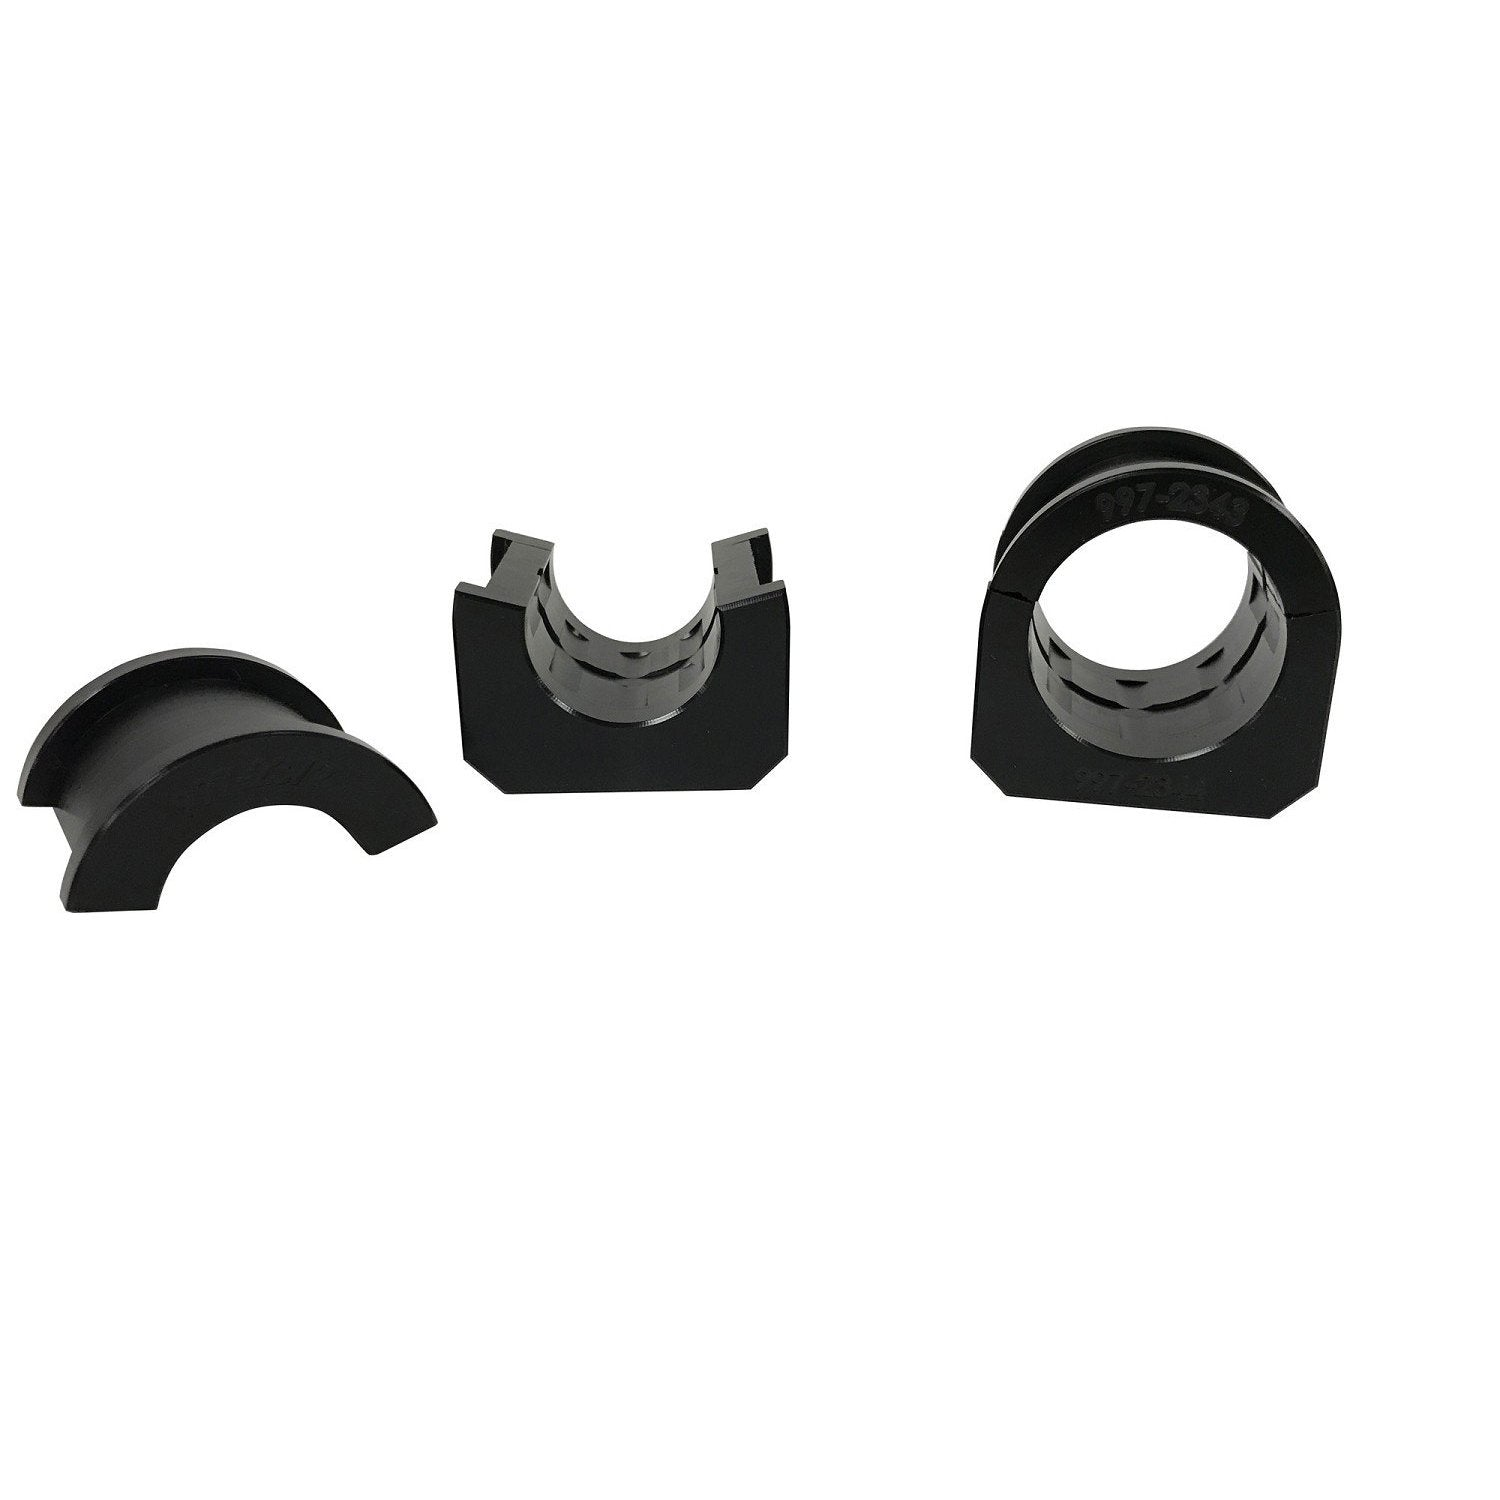 "Steeda Delrin Rear Swaybar Bushings for 1-1/8"" Swaybars (1979-2019) 555 8169"